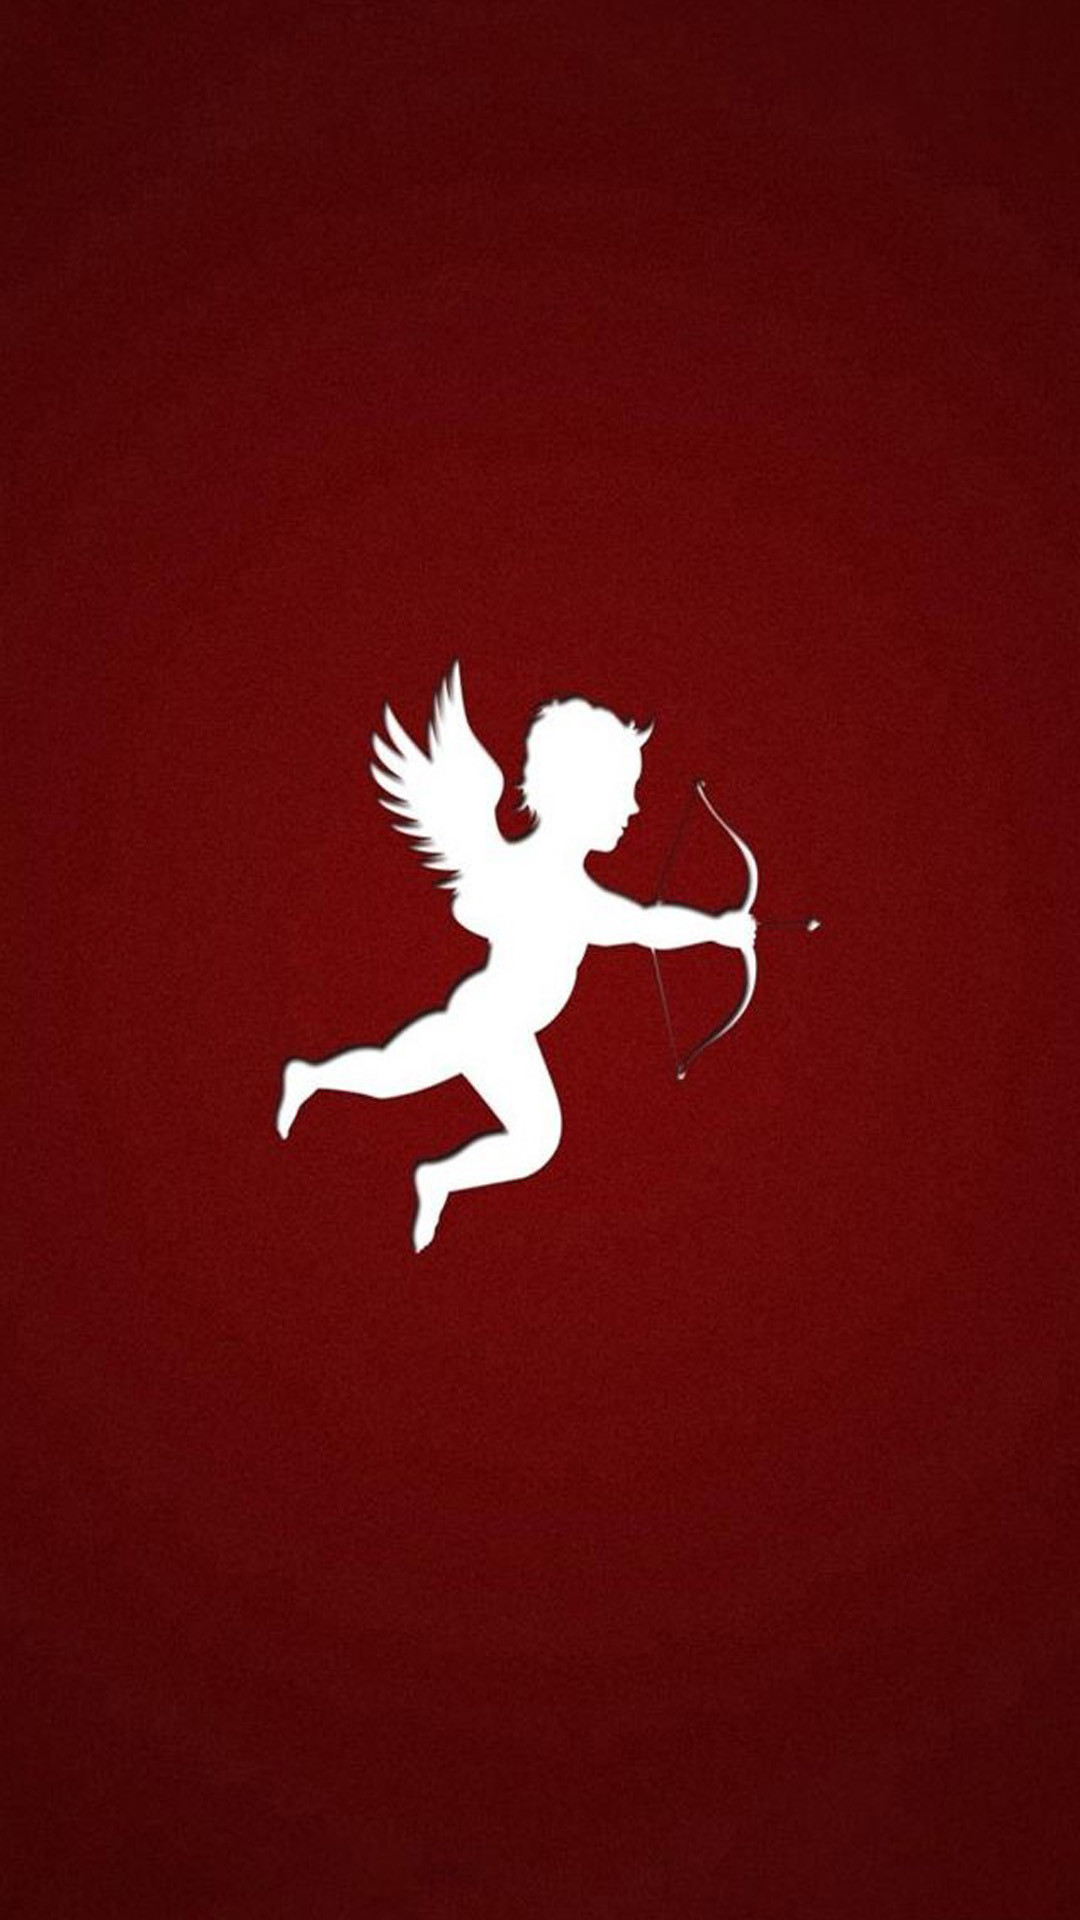 Simple The Arrow Of Cupid Outline Art iPhone 8 wallpaper